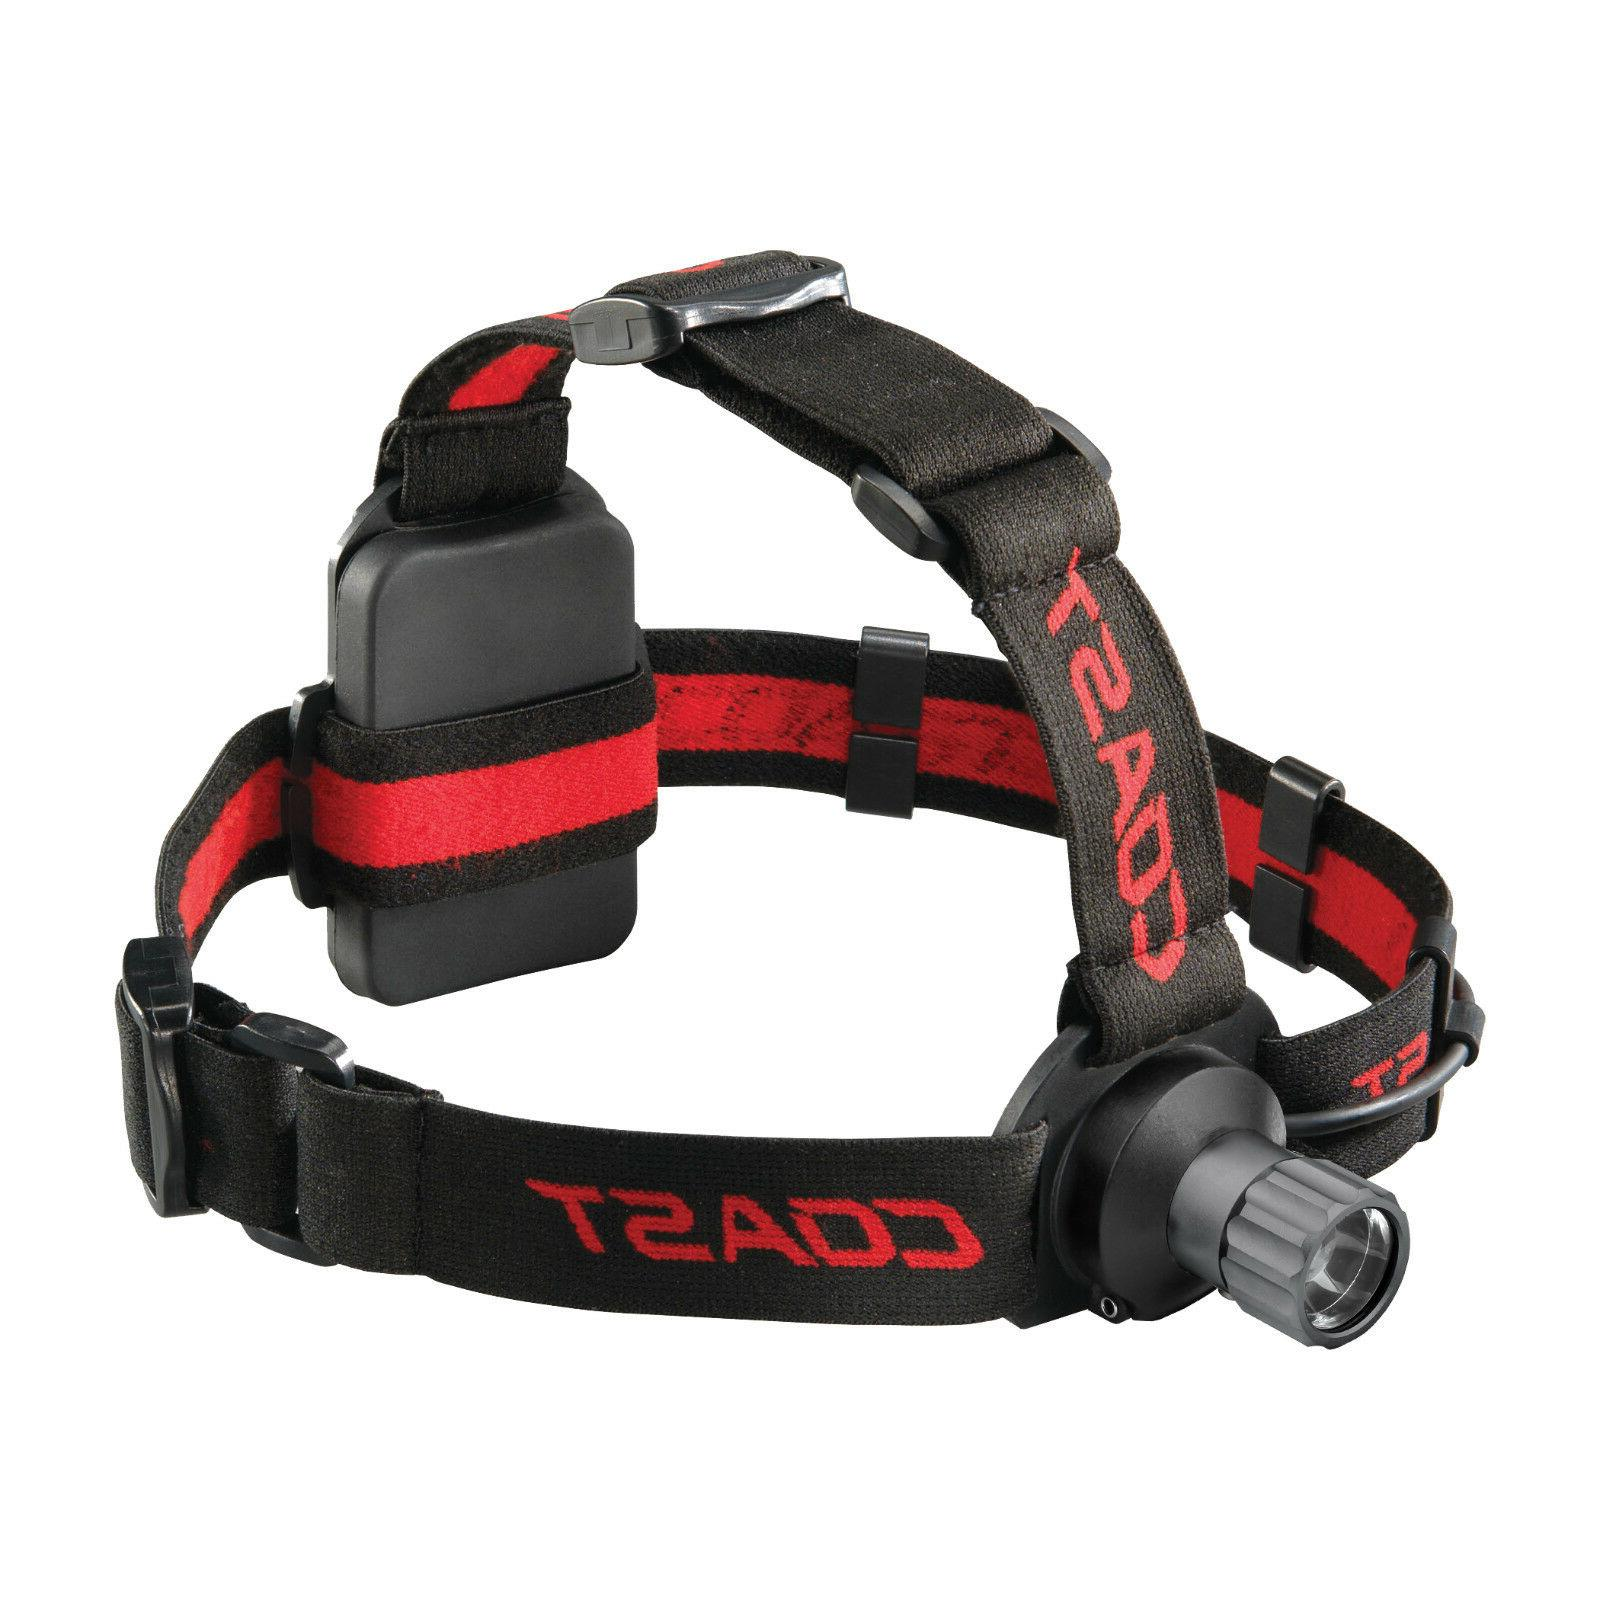 300 lumens led headlamp headlight ipx4 weather